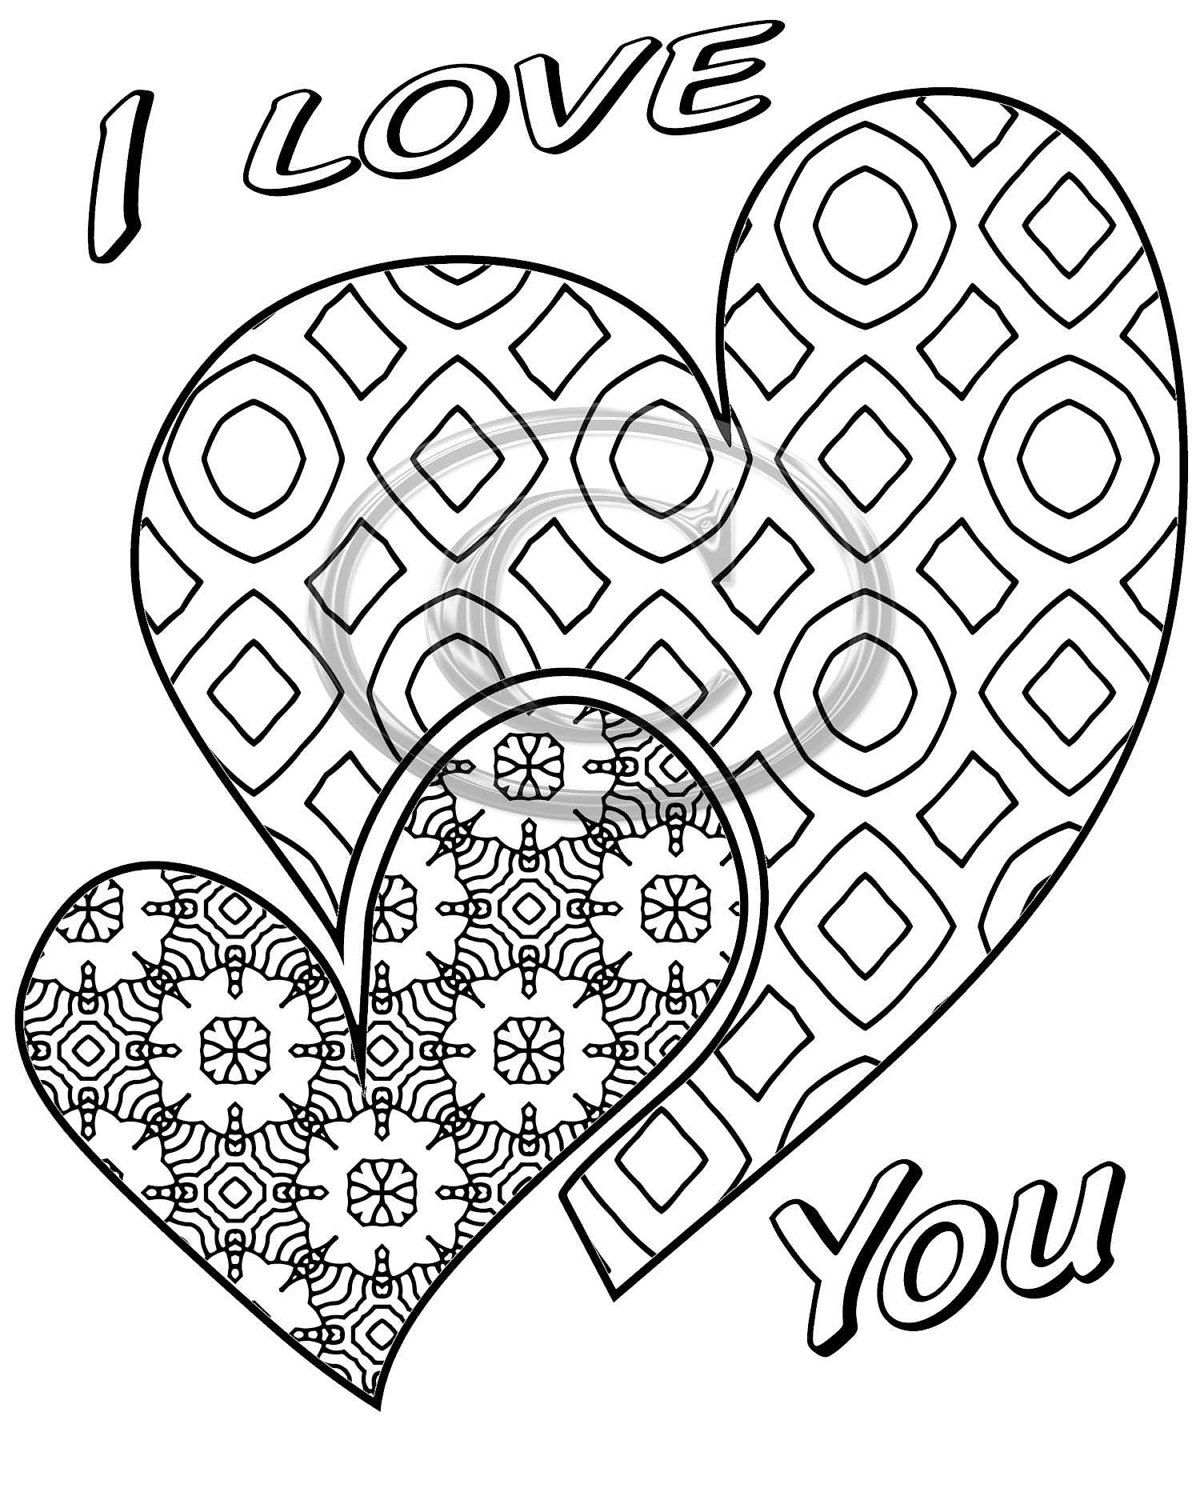 I Love You 2 Hearts Coloring Page Etsy Heart Coloring Pages Love Coloring Pages Valentine Coloring Pages